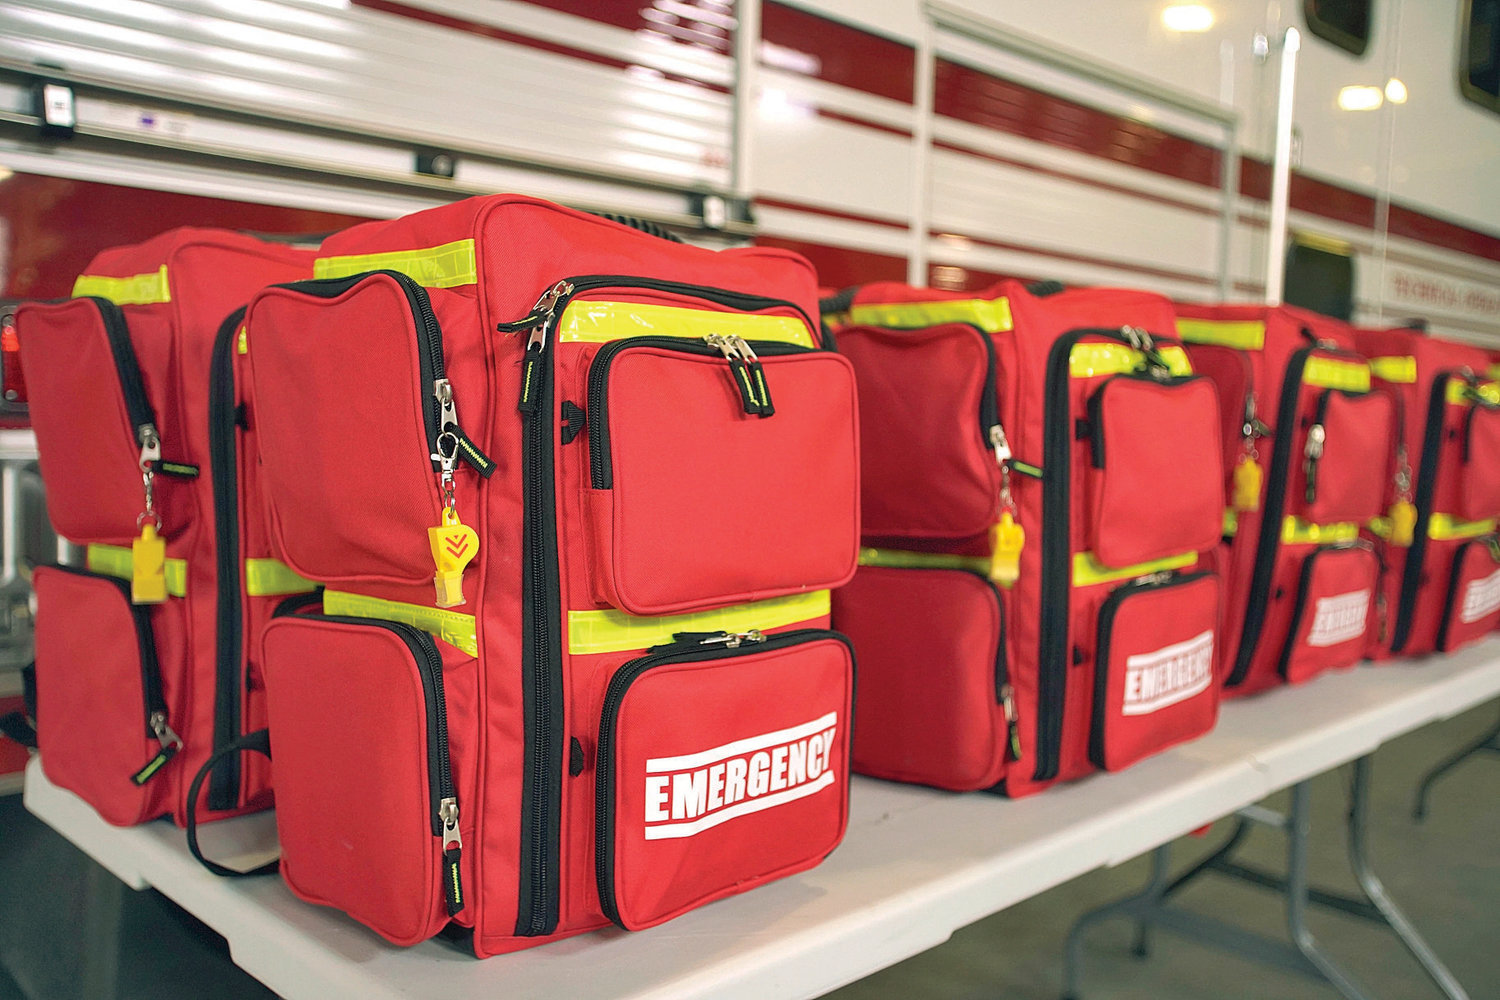 Pittsfield schools get trauma kits to help in event of injury, attack – Berkshire Eagle